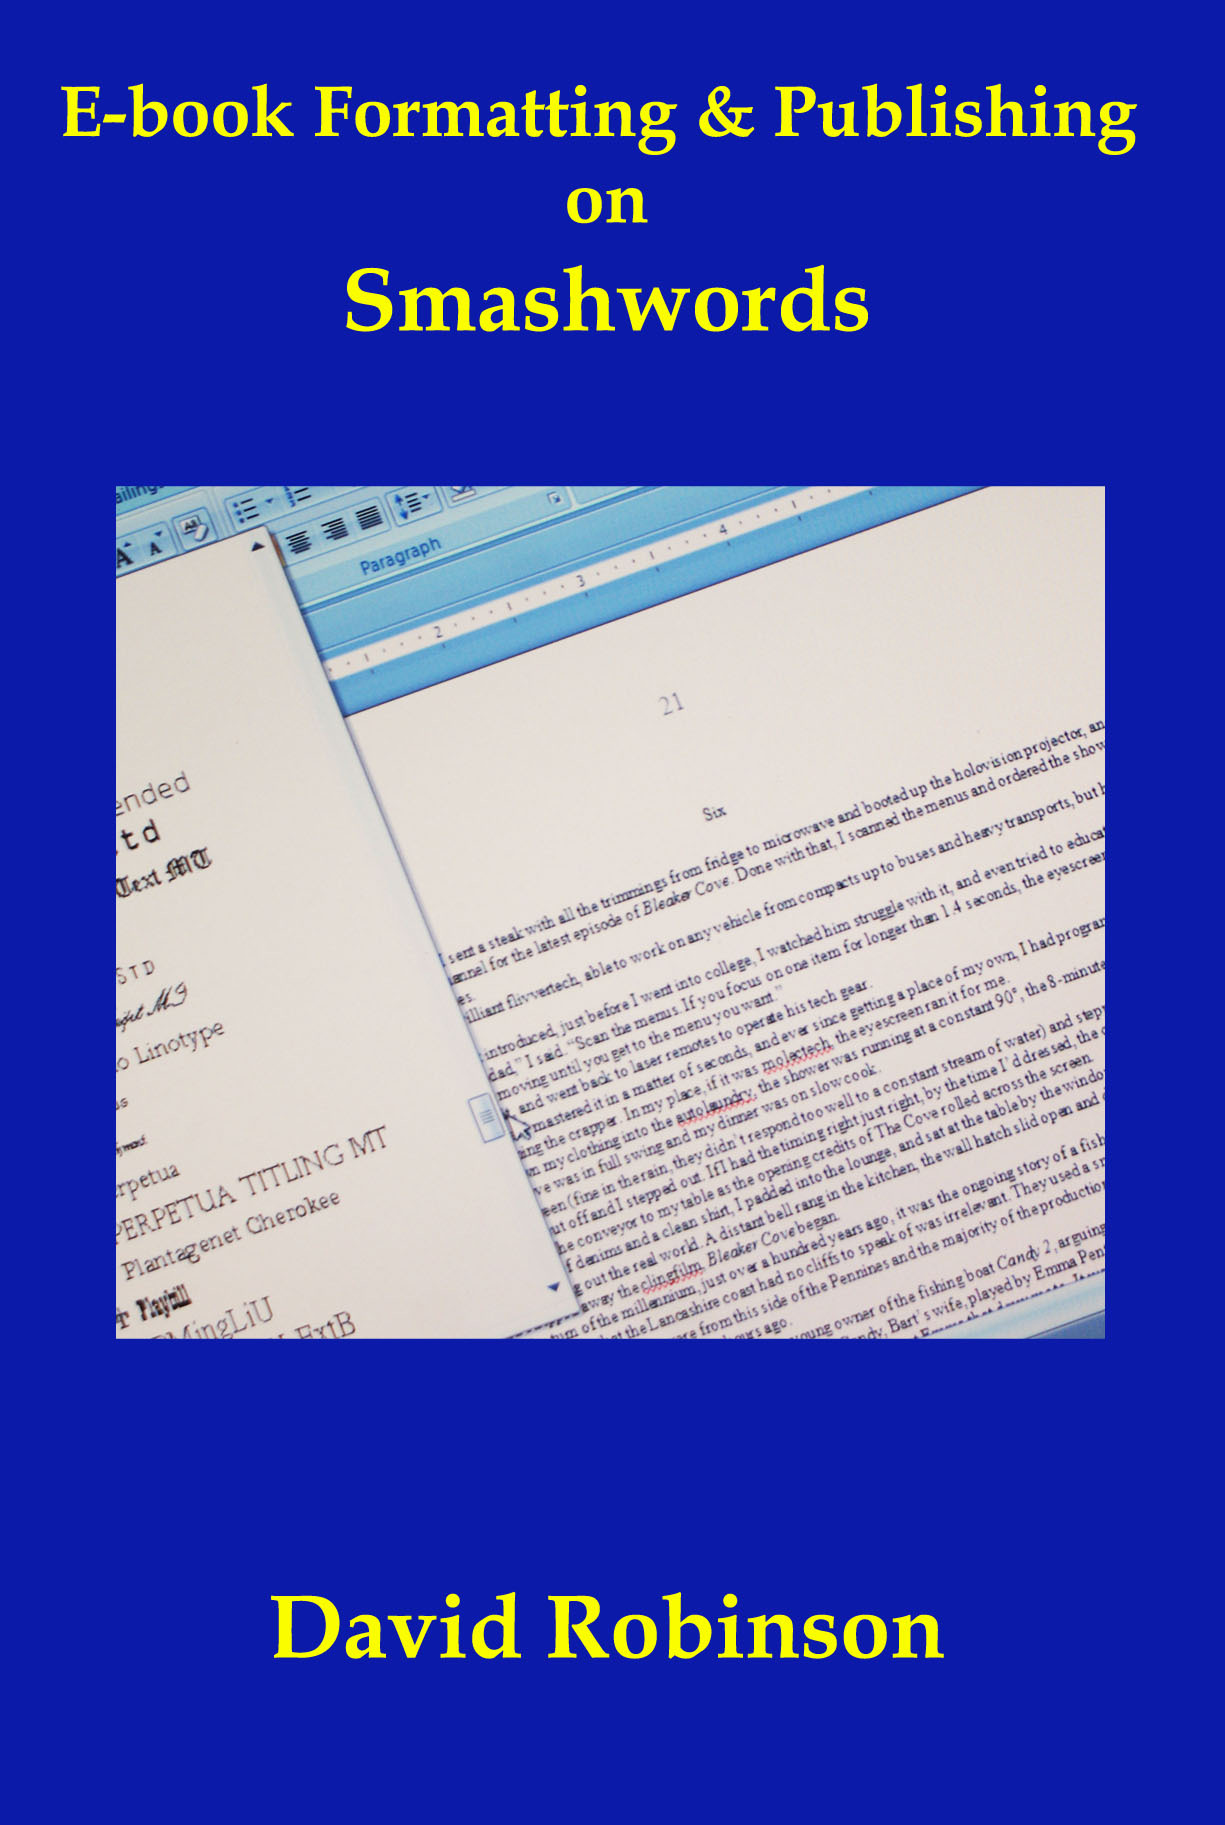 E-book Formatting & Publishing on Smashwords